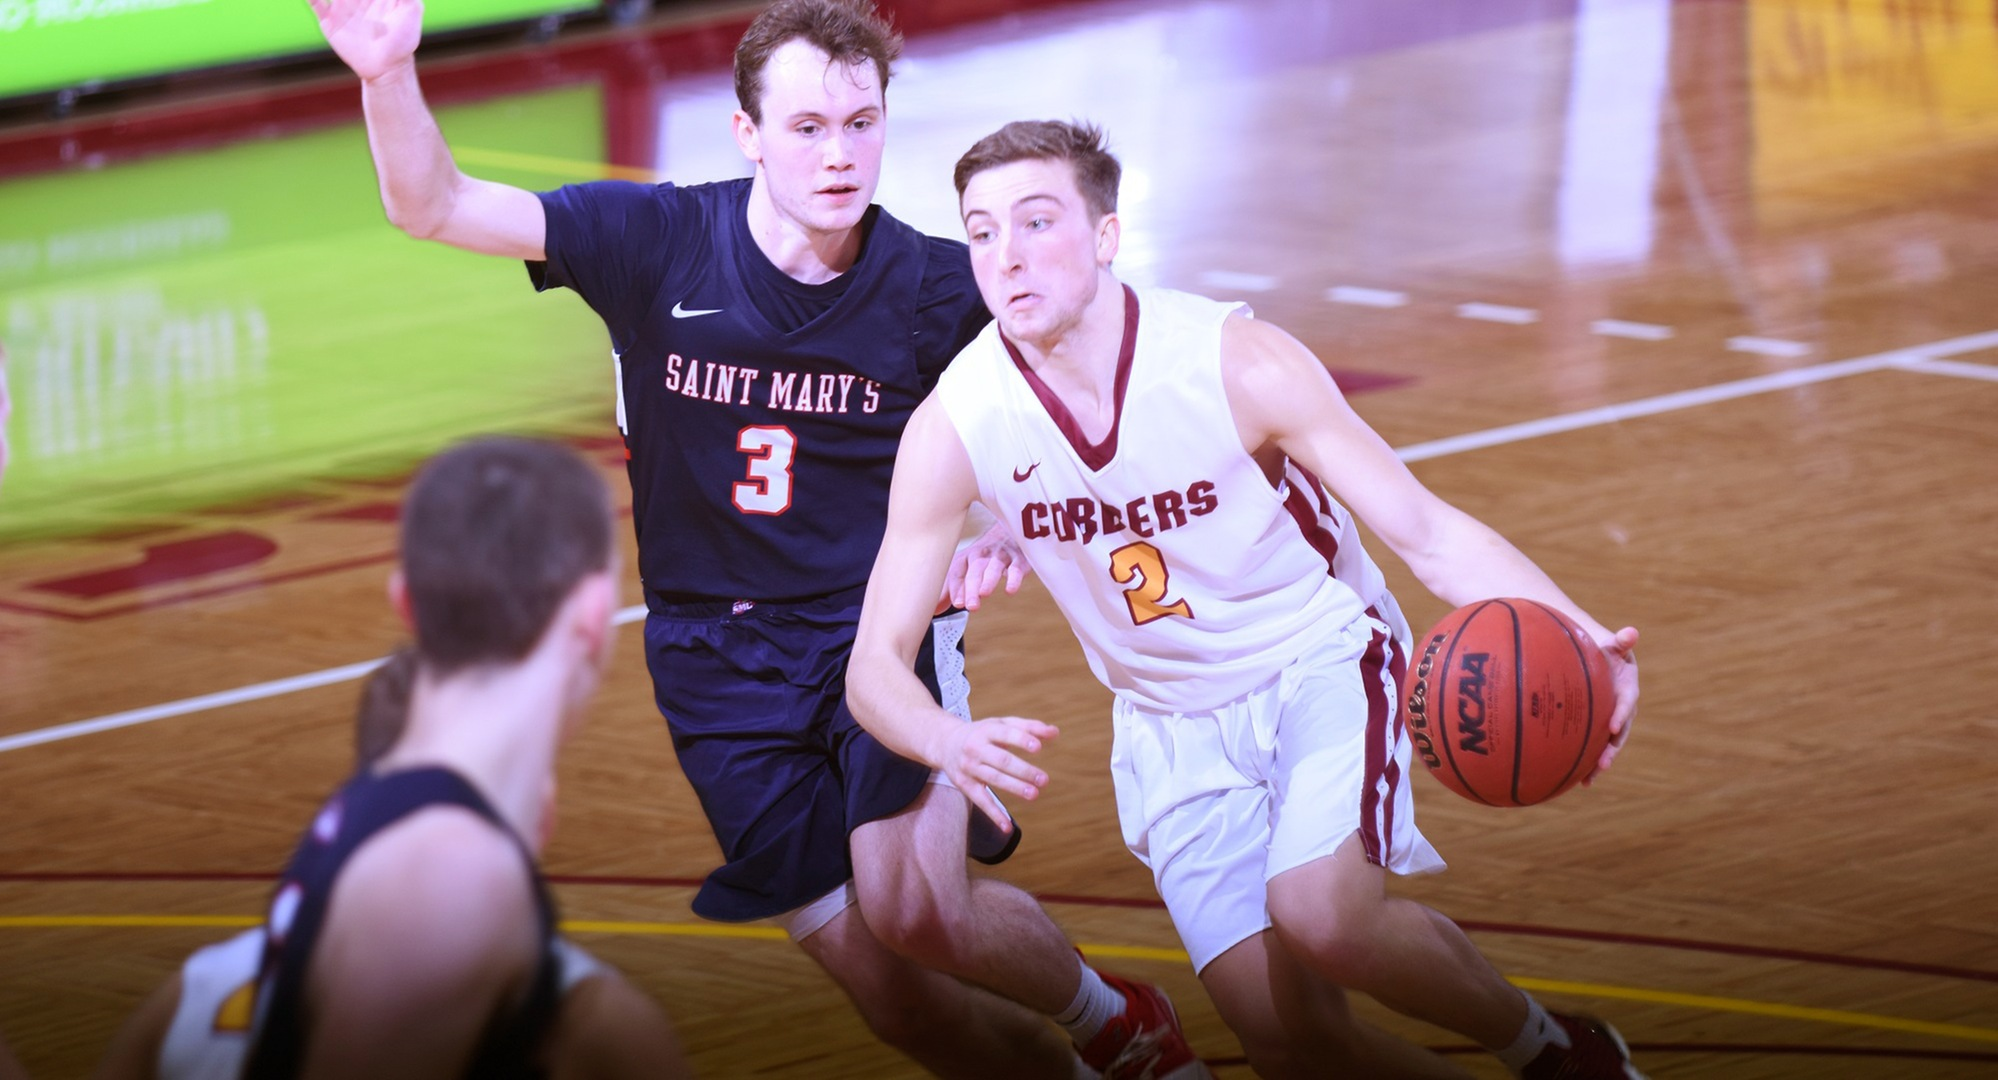 Junior Bryden Urie had a game-high 18 points in the Cobbers' conference road game at St. Mary's.